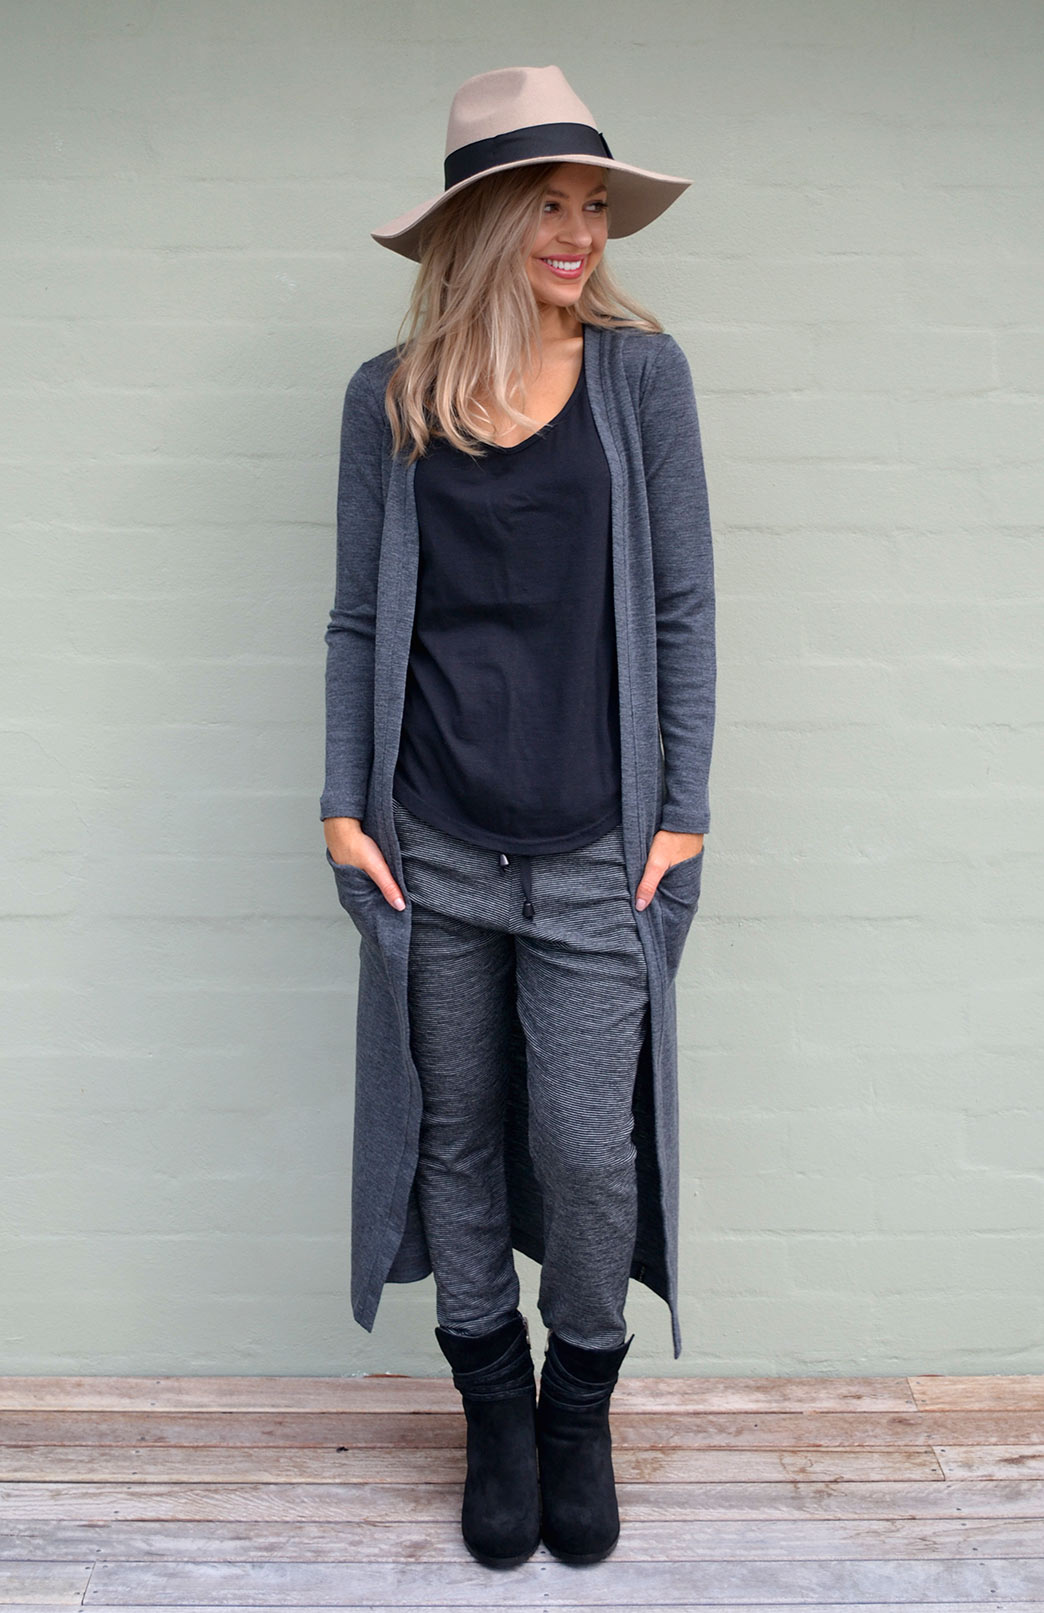 Coatigan - Women's Long Line Dark Grey Charcoal Long Sleeved Cardigan with Pockets - Smitten Merino Tasmania Australia